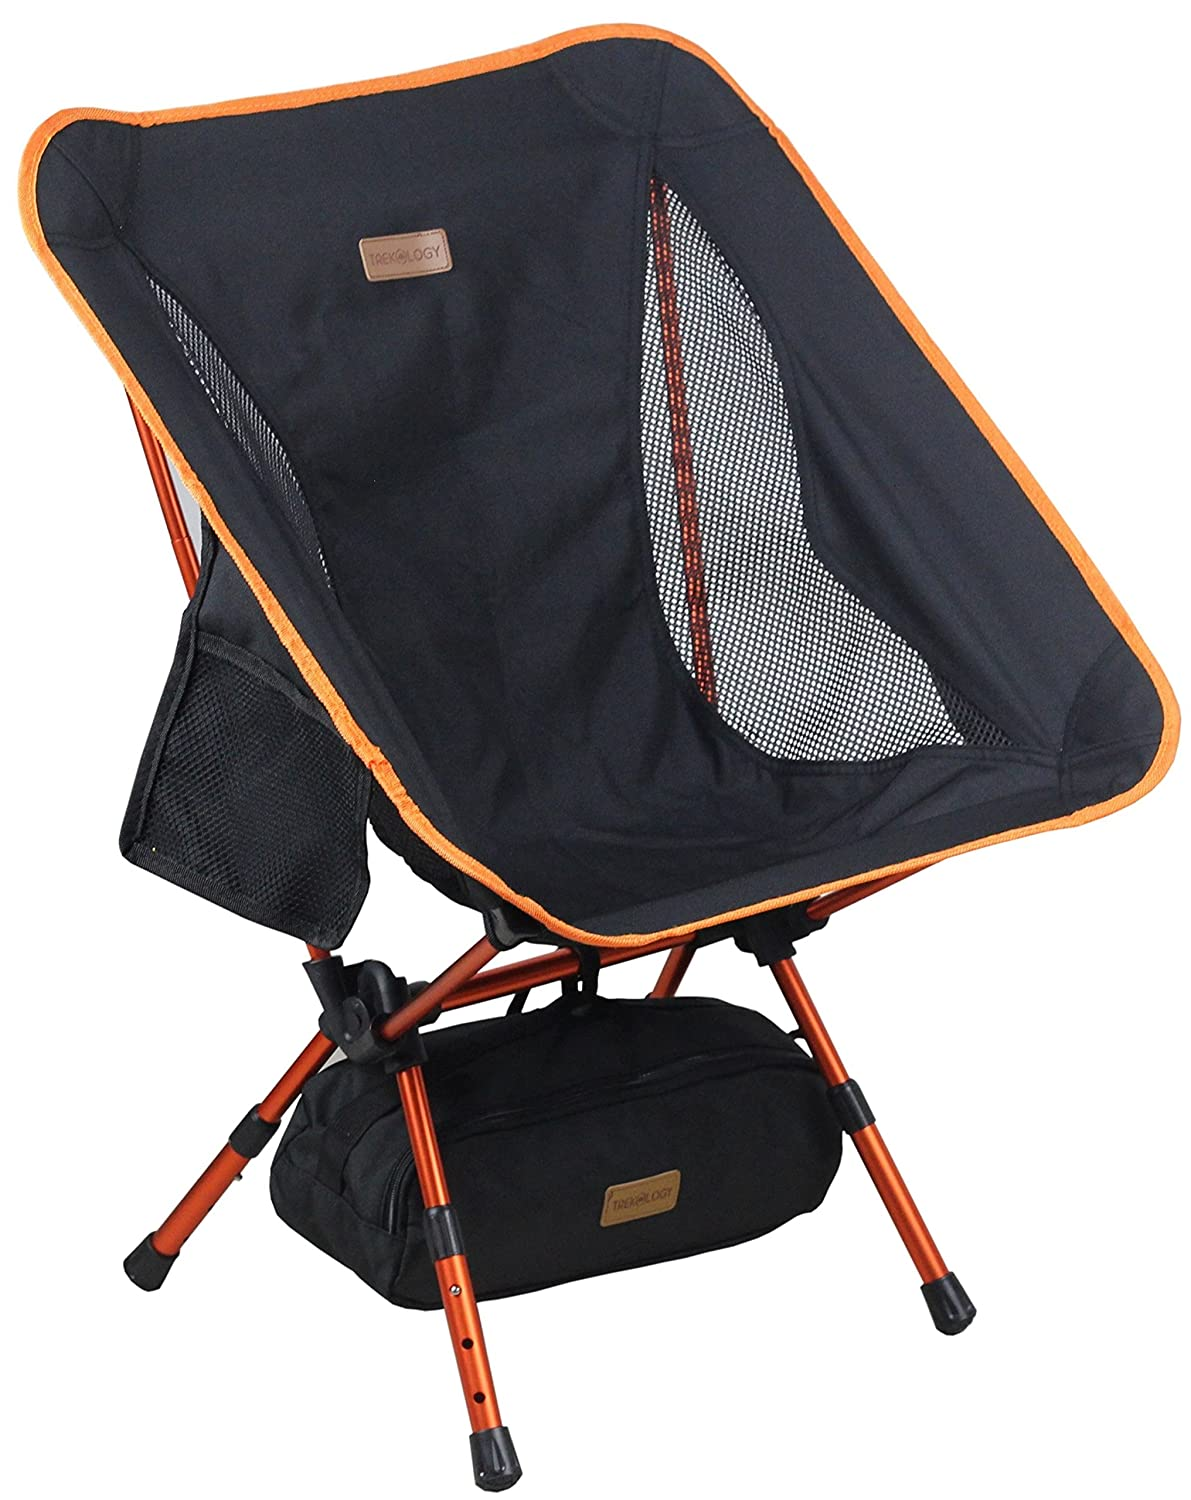 Trekology Yizi Go Portable Camping Chair With Adjustable